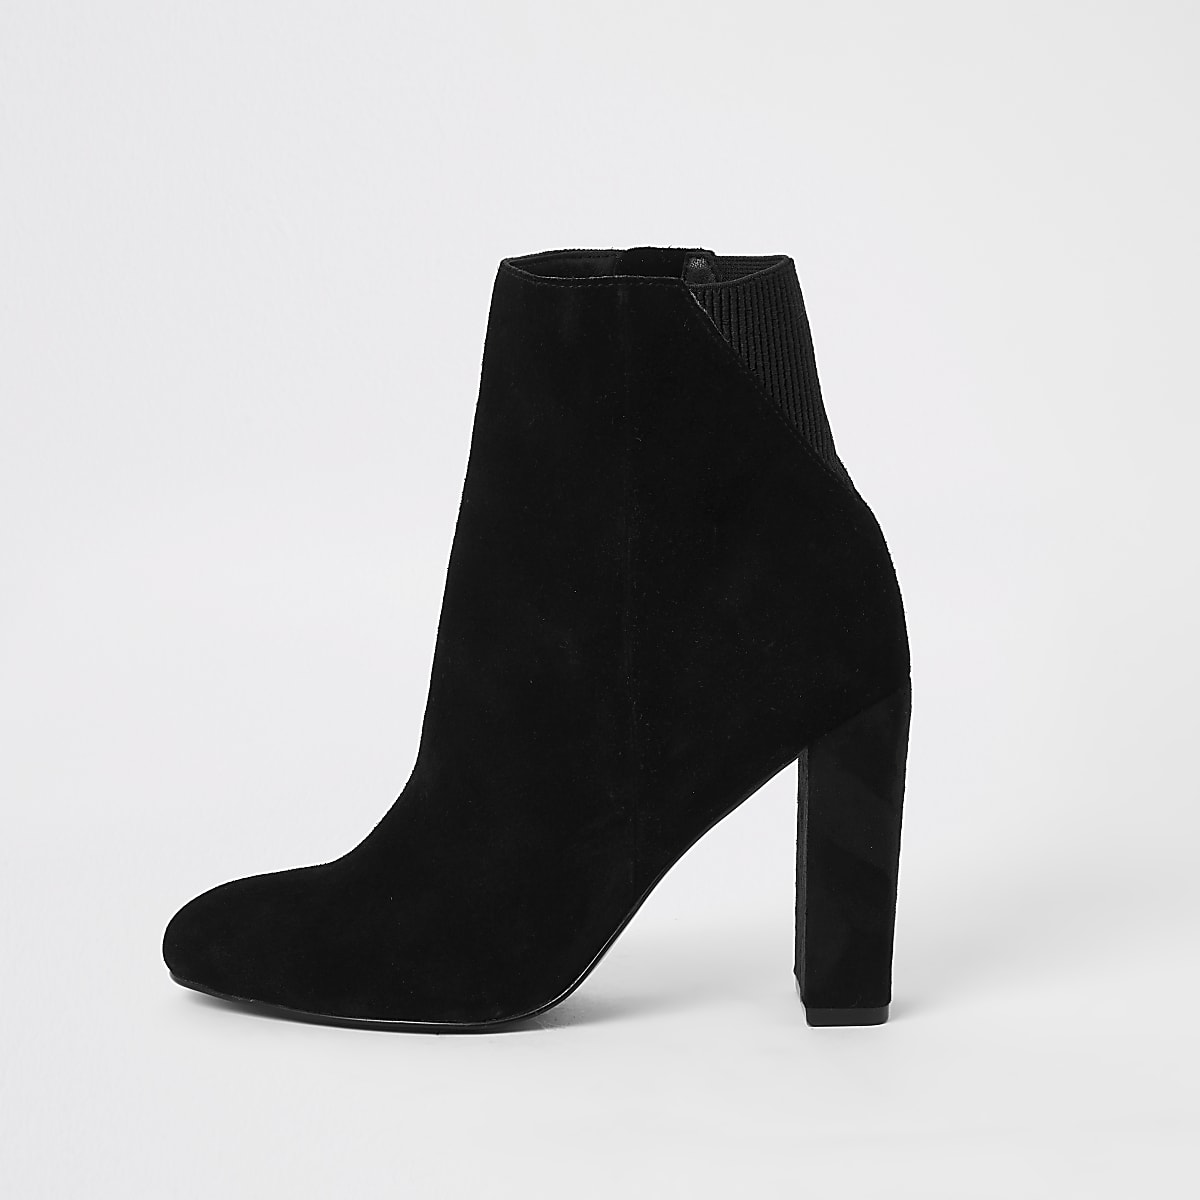 Black suede round toe heeled ankle boots